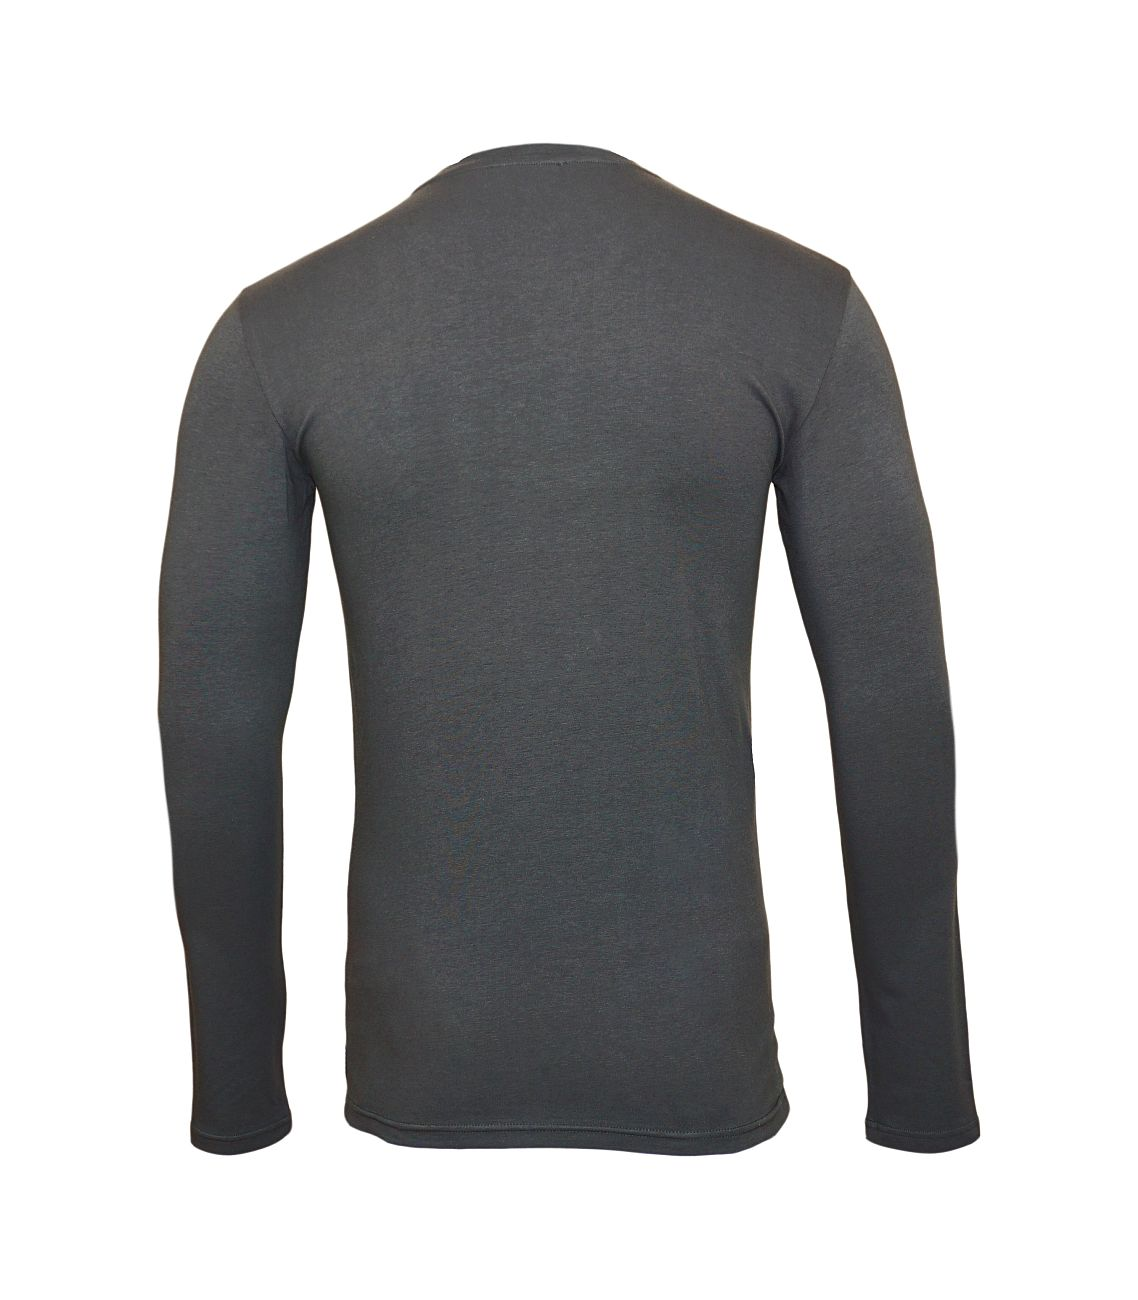 Emporio Armani Longsleeve Rundhals Shirt 111023 8A512 00044 ANTRACITE WX18-EAL